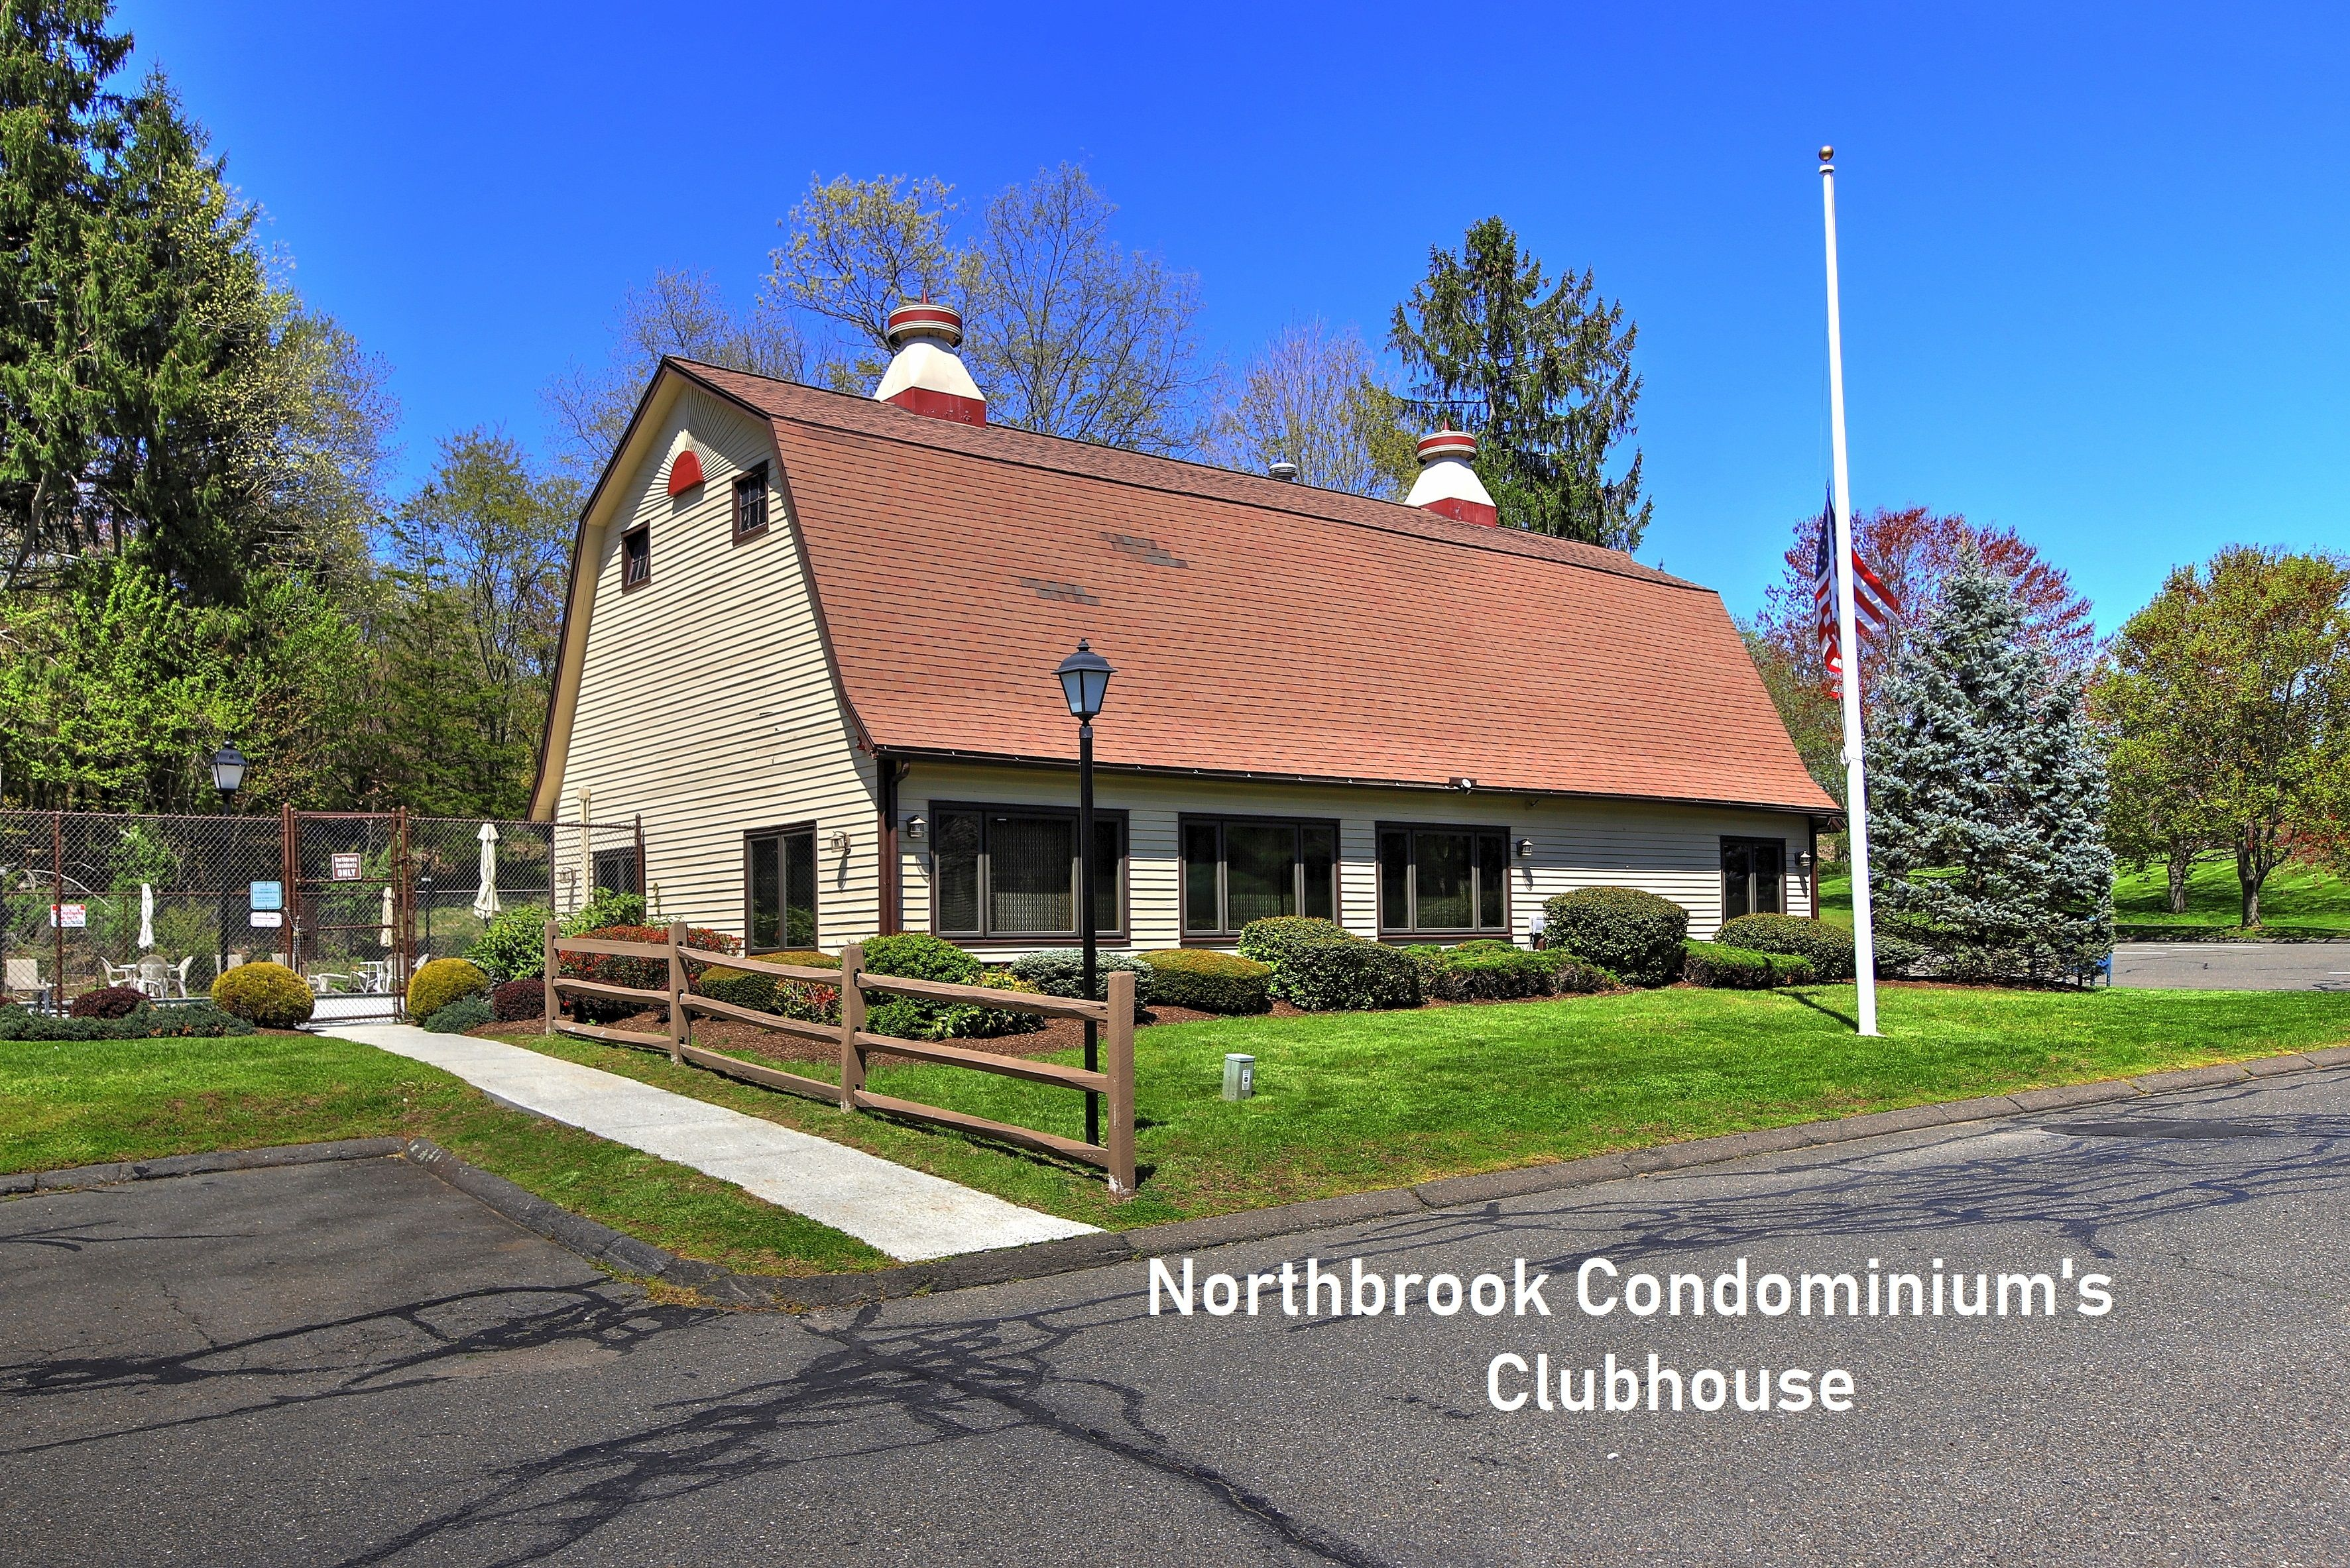 northbrook condo clubhouse